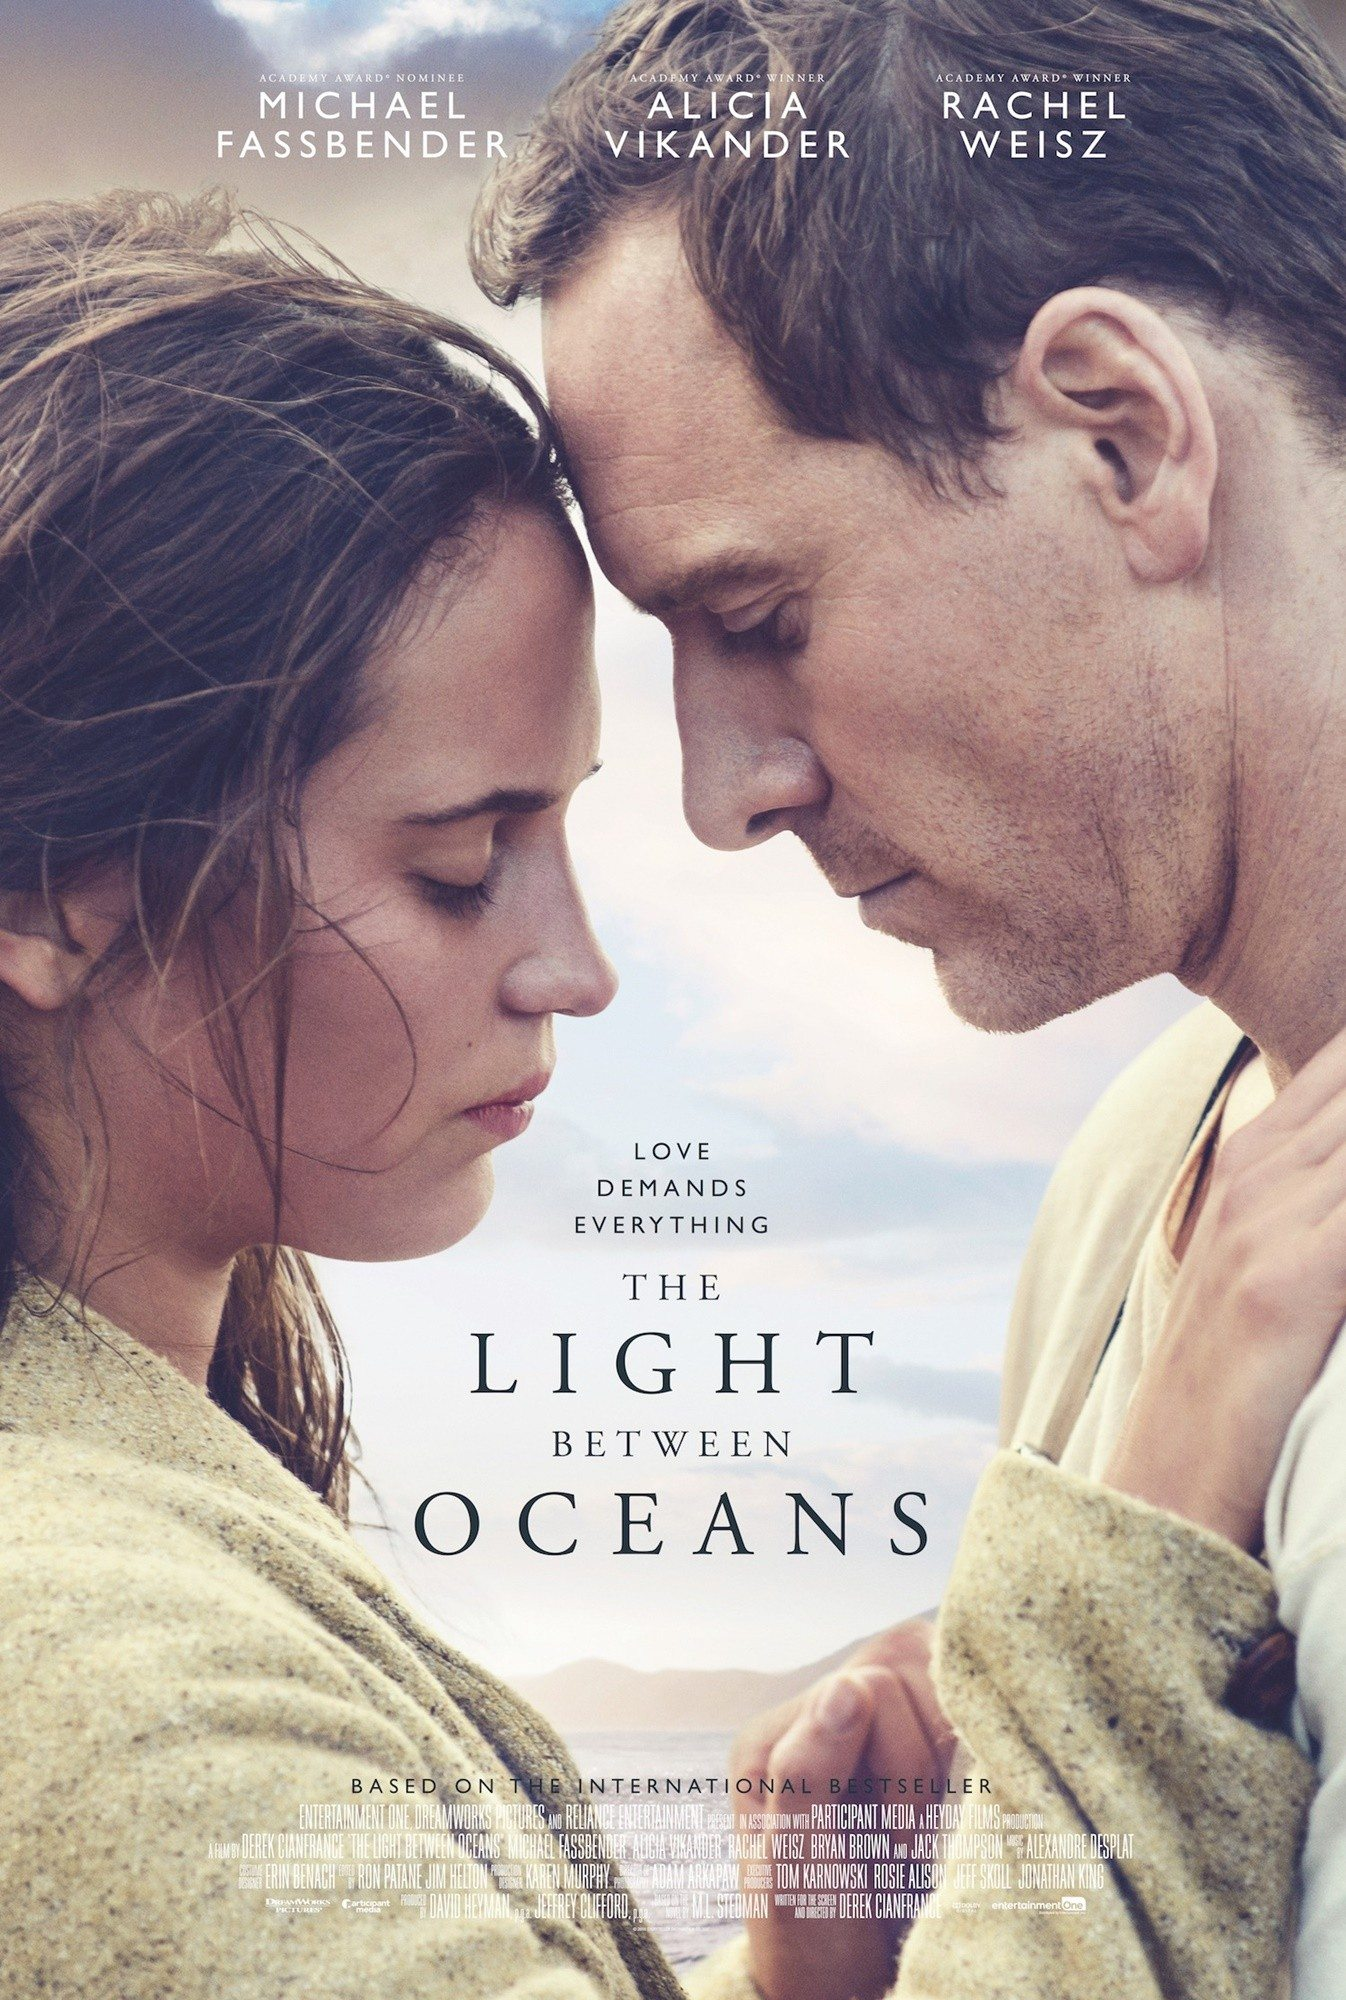 light-between-oceans-pstr01.jpg